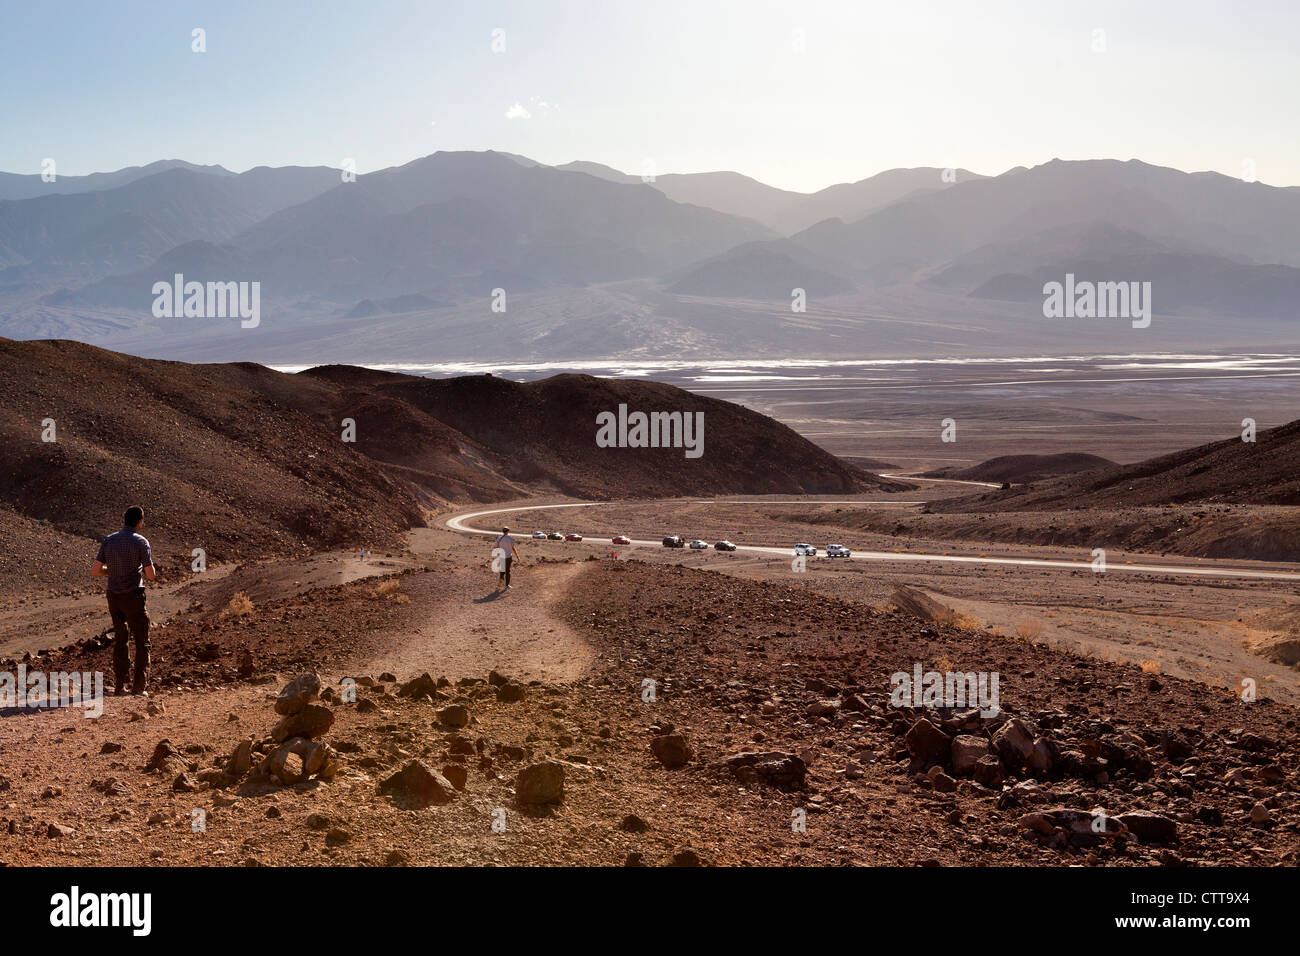 Artists Palette, Death Valley, California - Stock Image